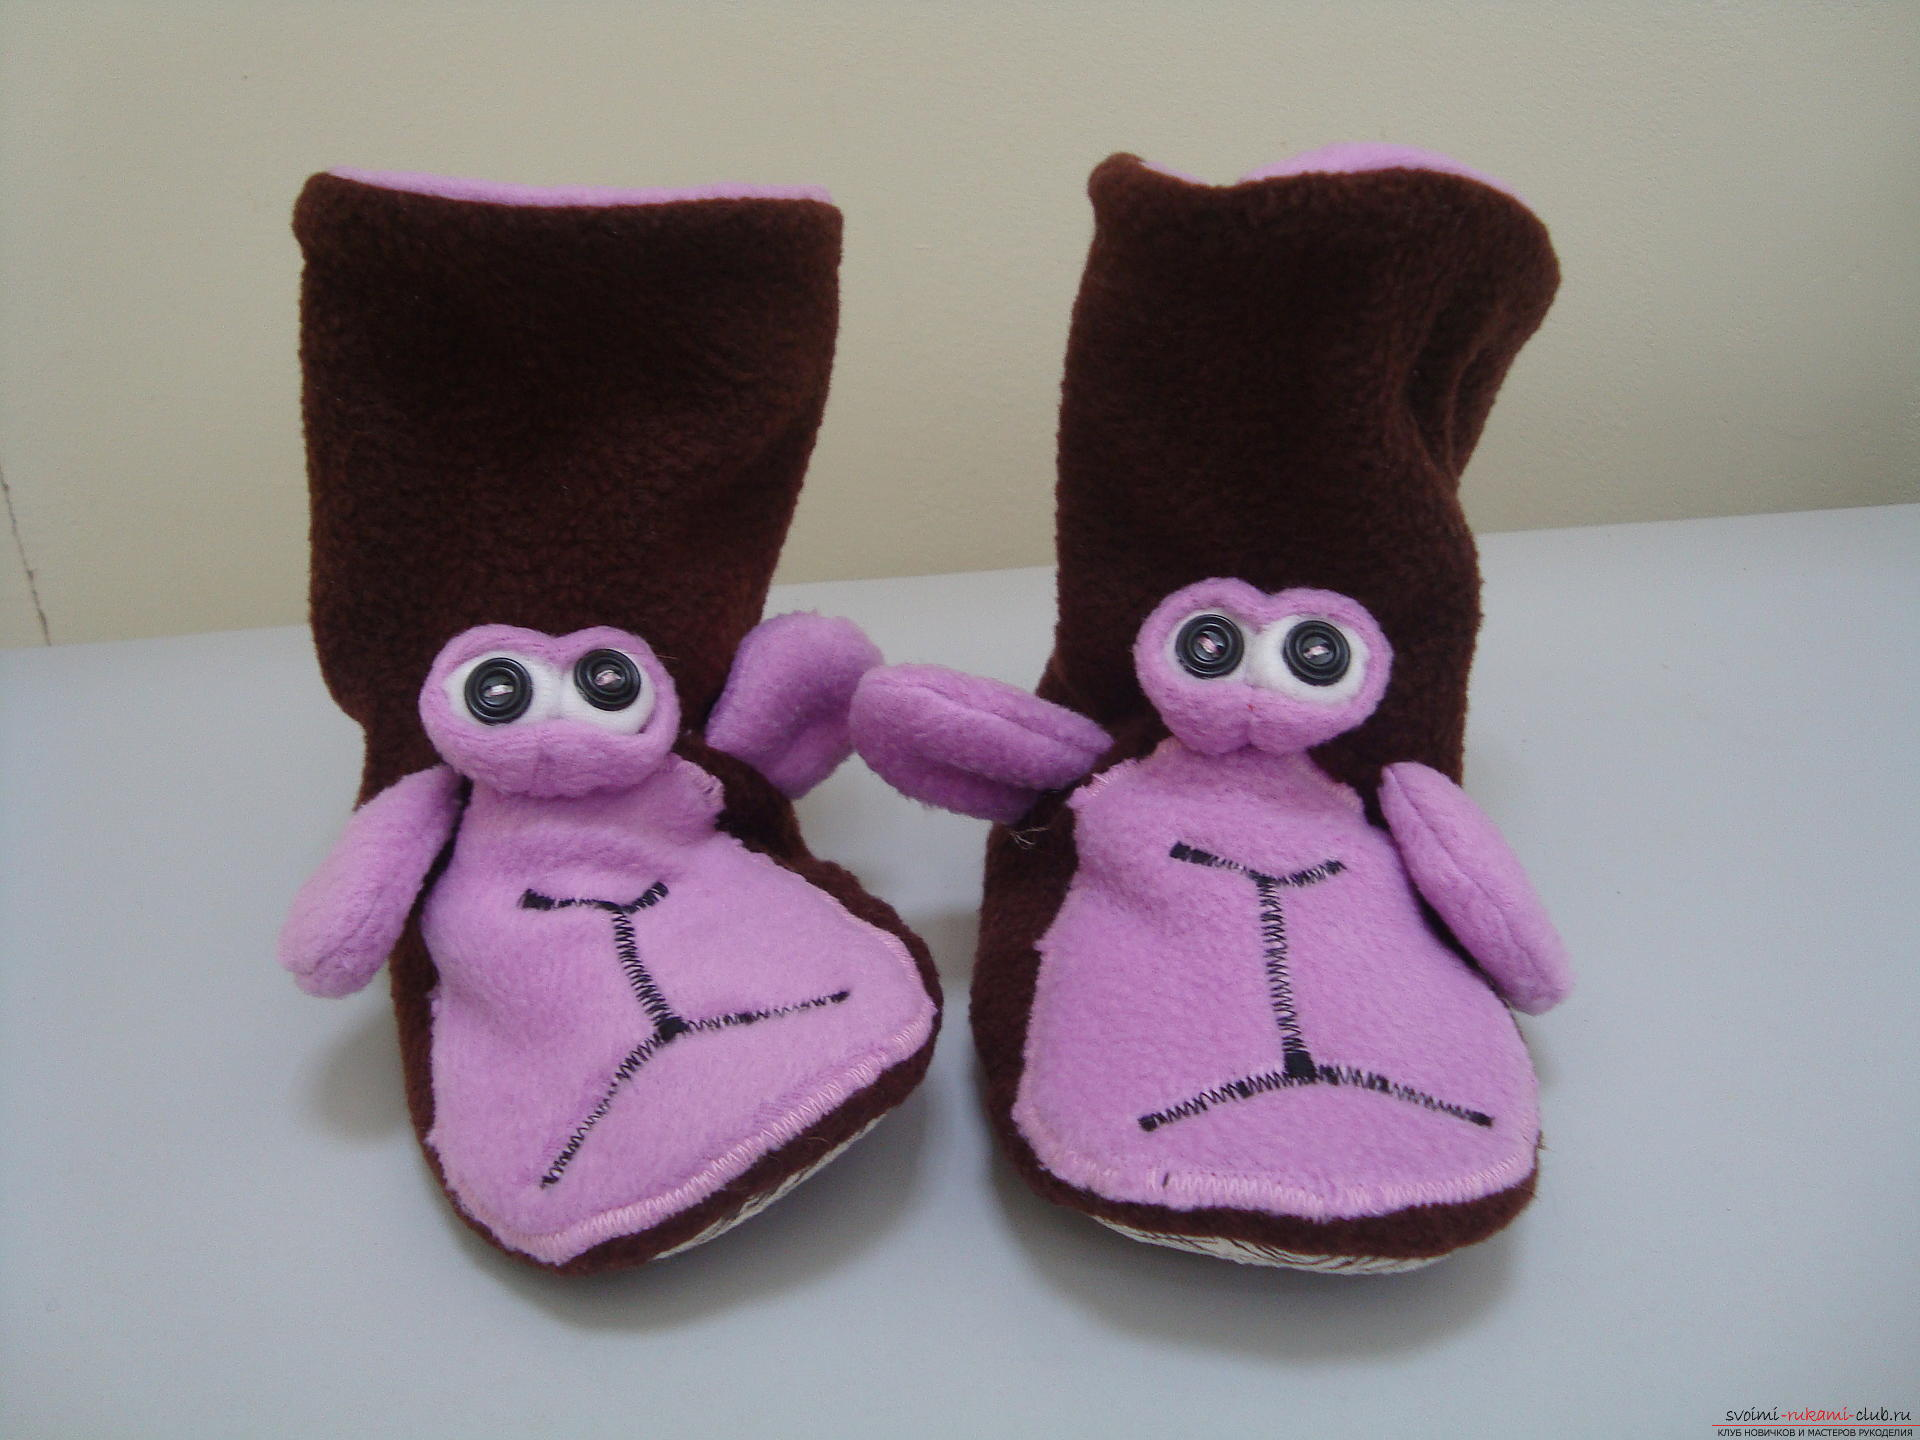 This master class will teach how to sew hand-made slippers with the symbol of the year - the monkey .. Photo # 5